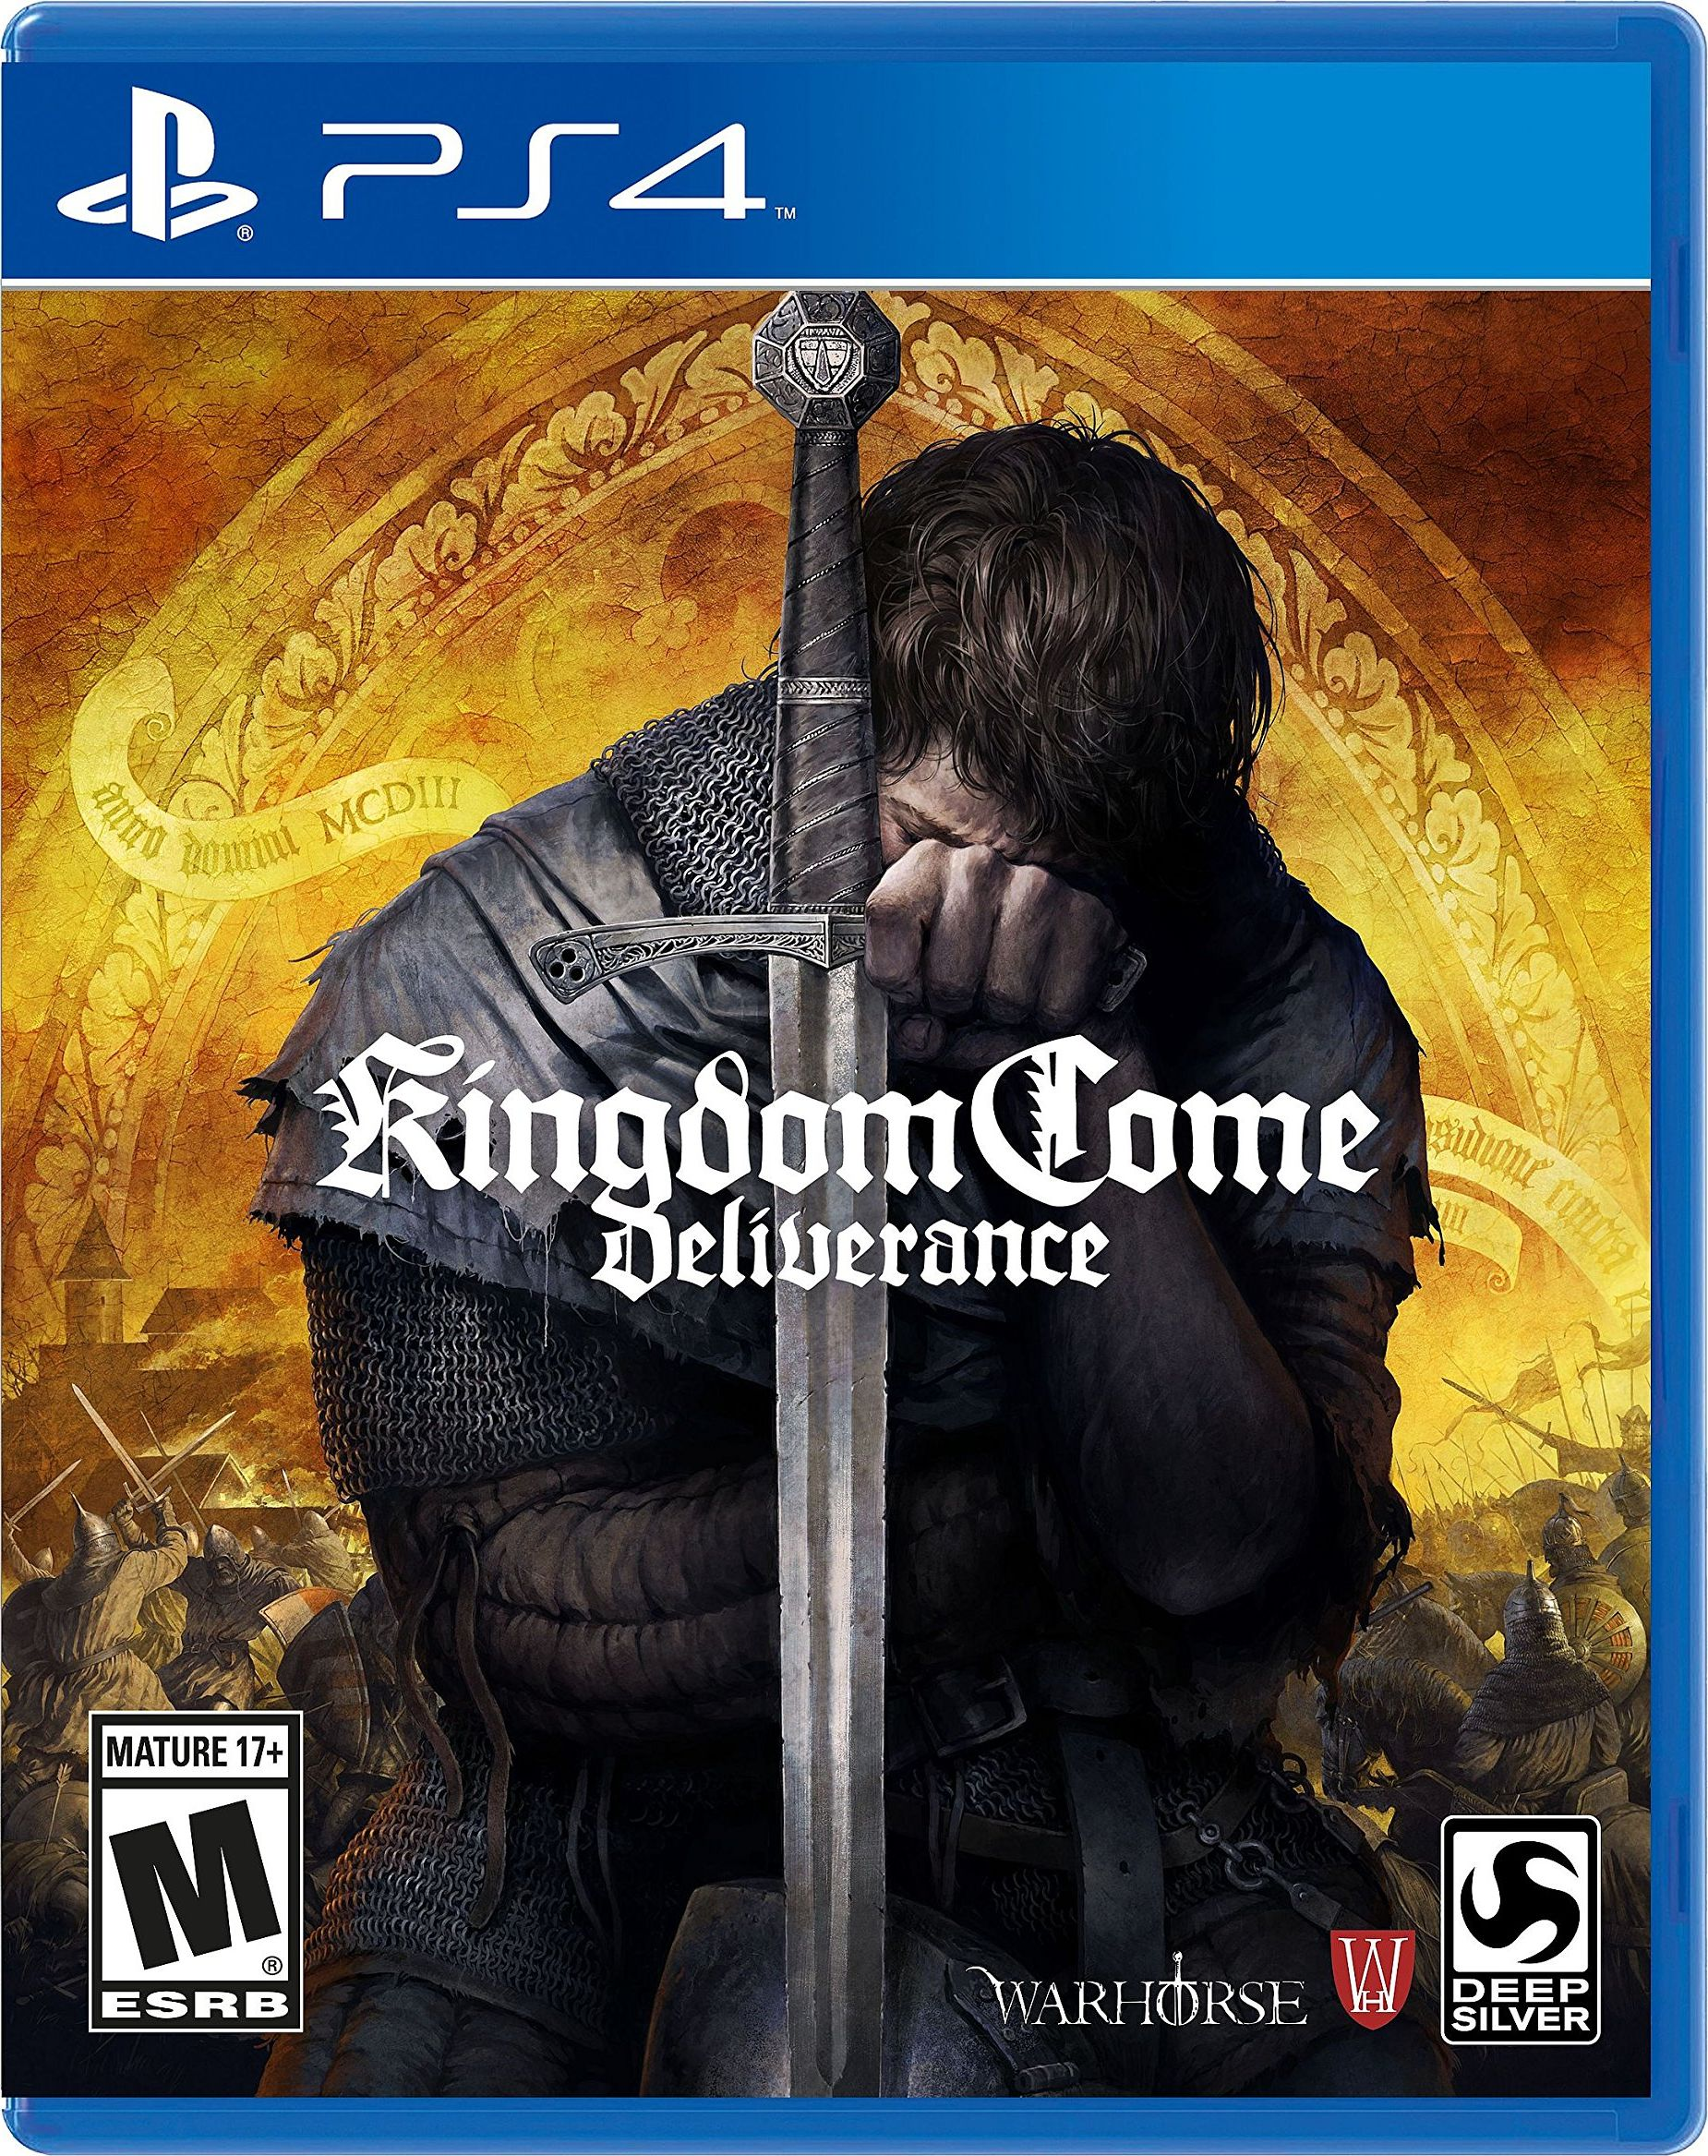 Games That Come With The Ps4 : Kingdom come deliverance release date xbox one ps